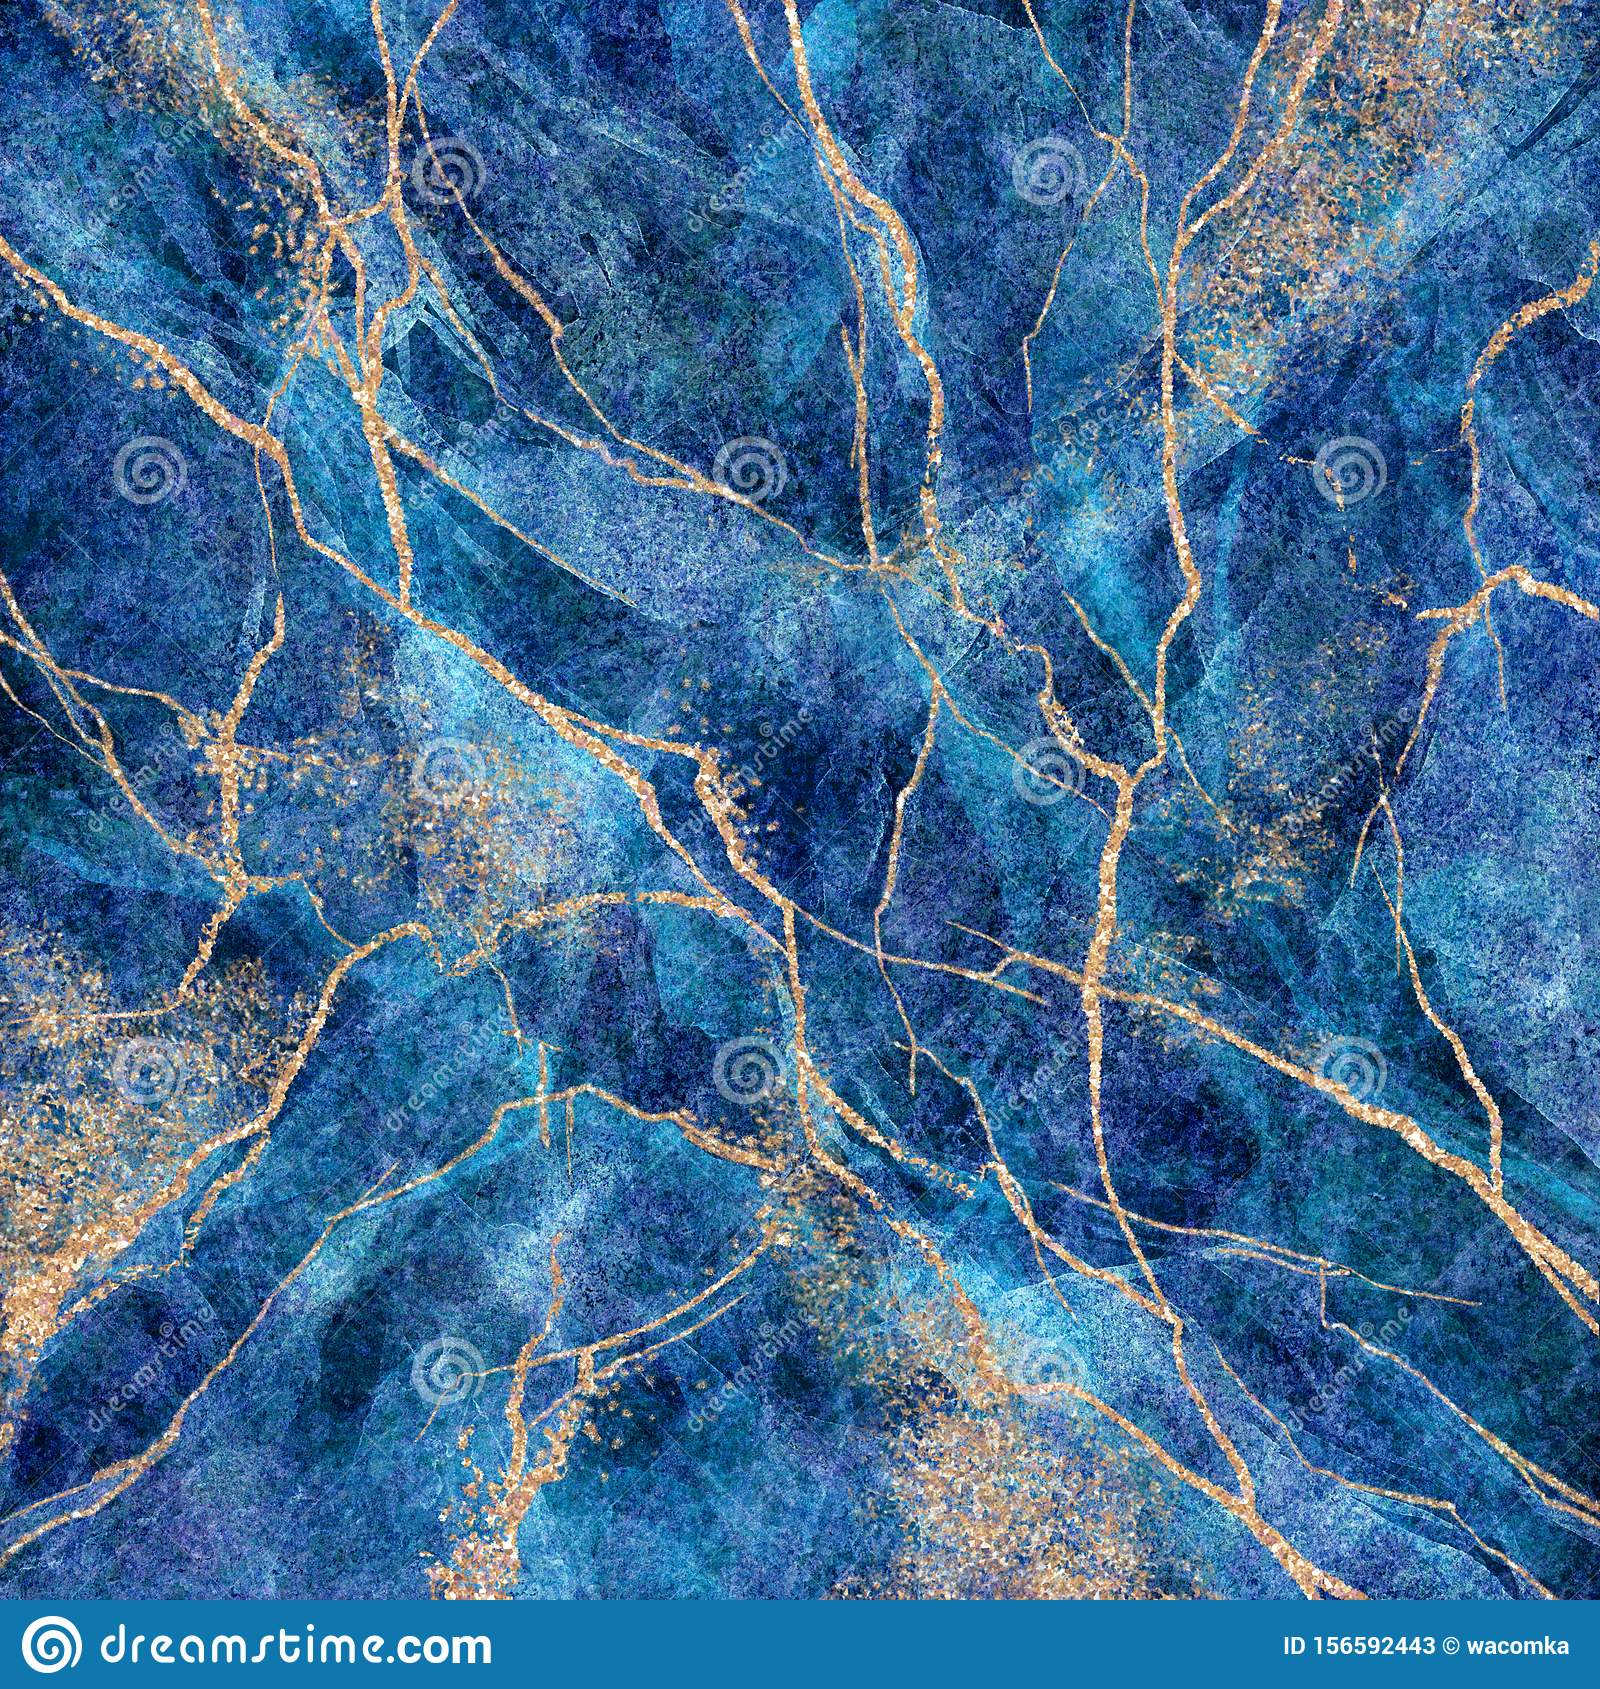 Abstract Background Blue Marble With Gold Glitter Veins Fake Stone Texture Painted Artificial Marbled Surface Fashion Marbling Stock Illustration Illustration Of Detail Drawn 156592443